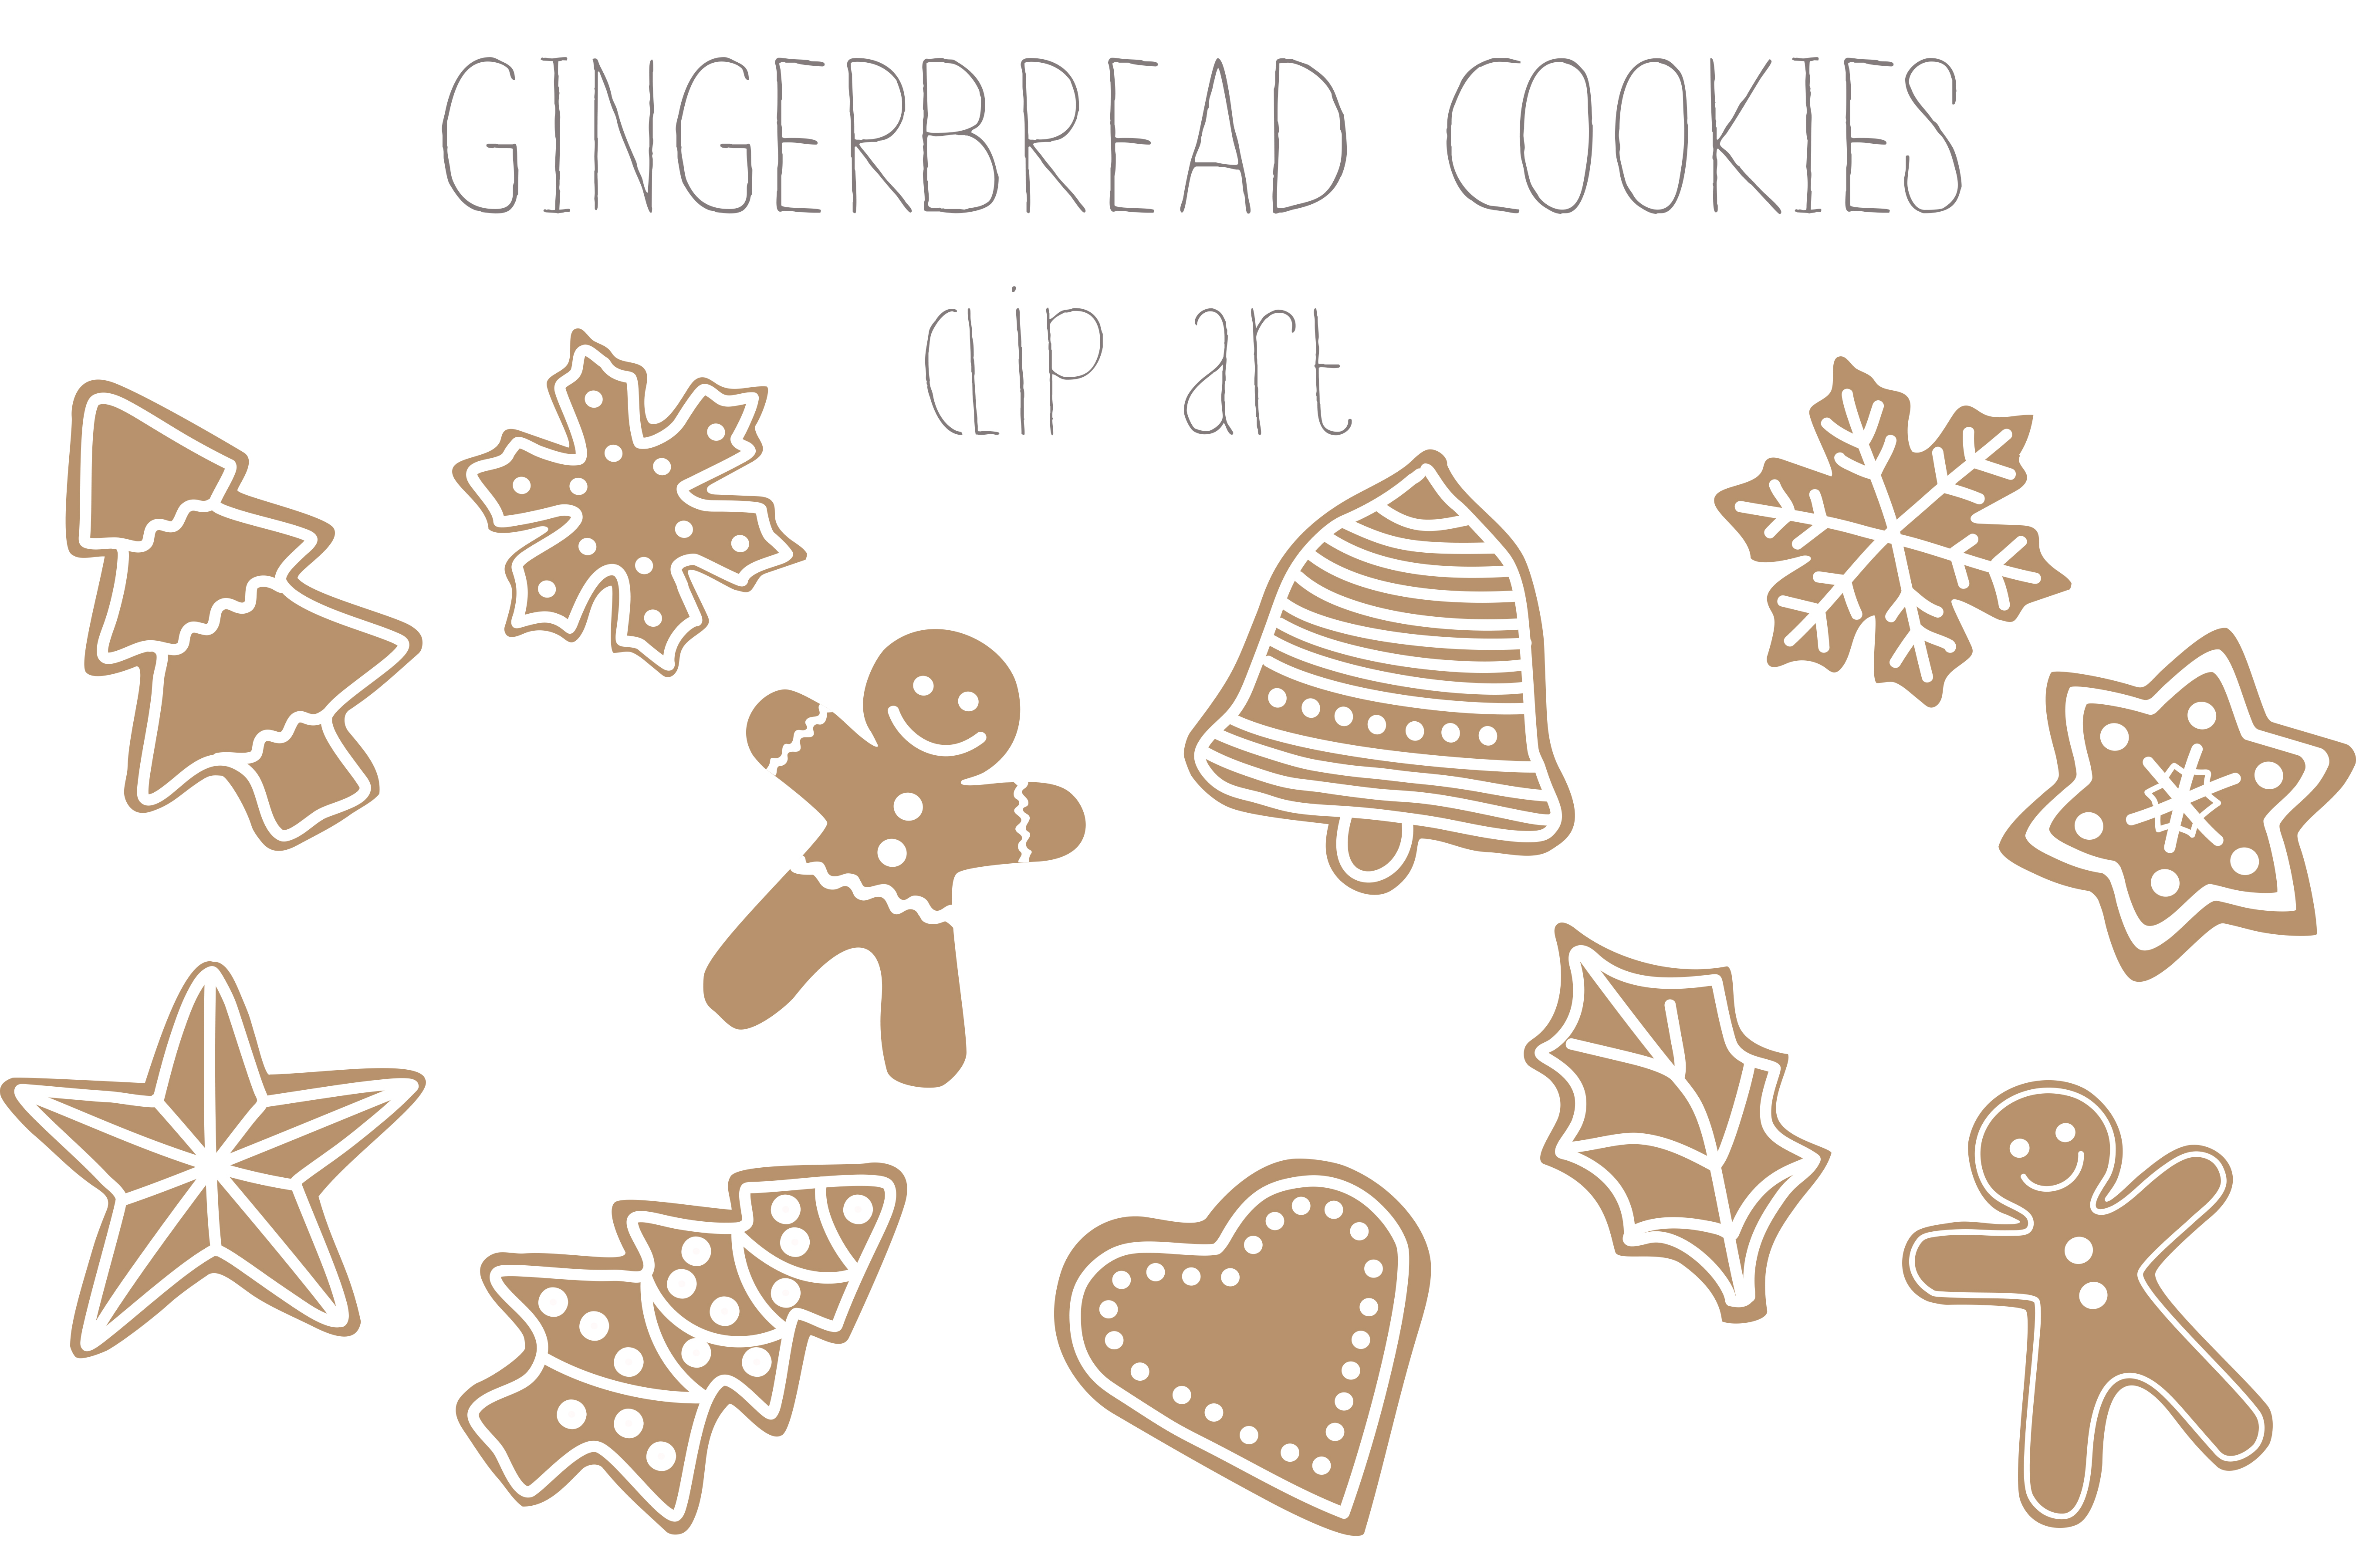 Gingerbread cookies clip art ~ Illustrations on Creative ...